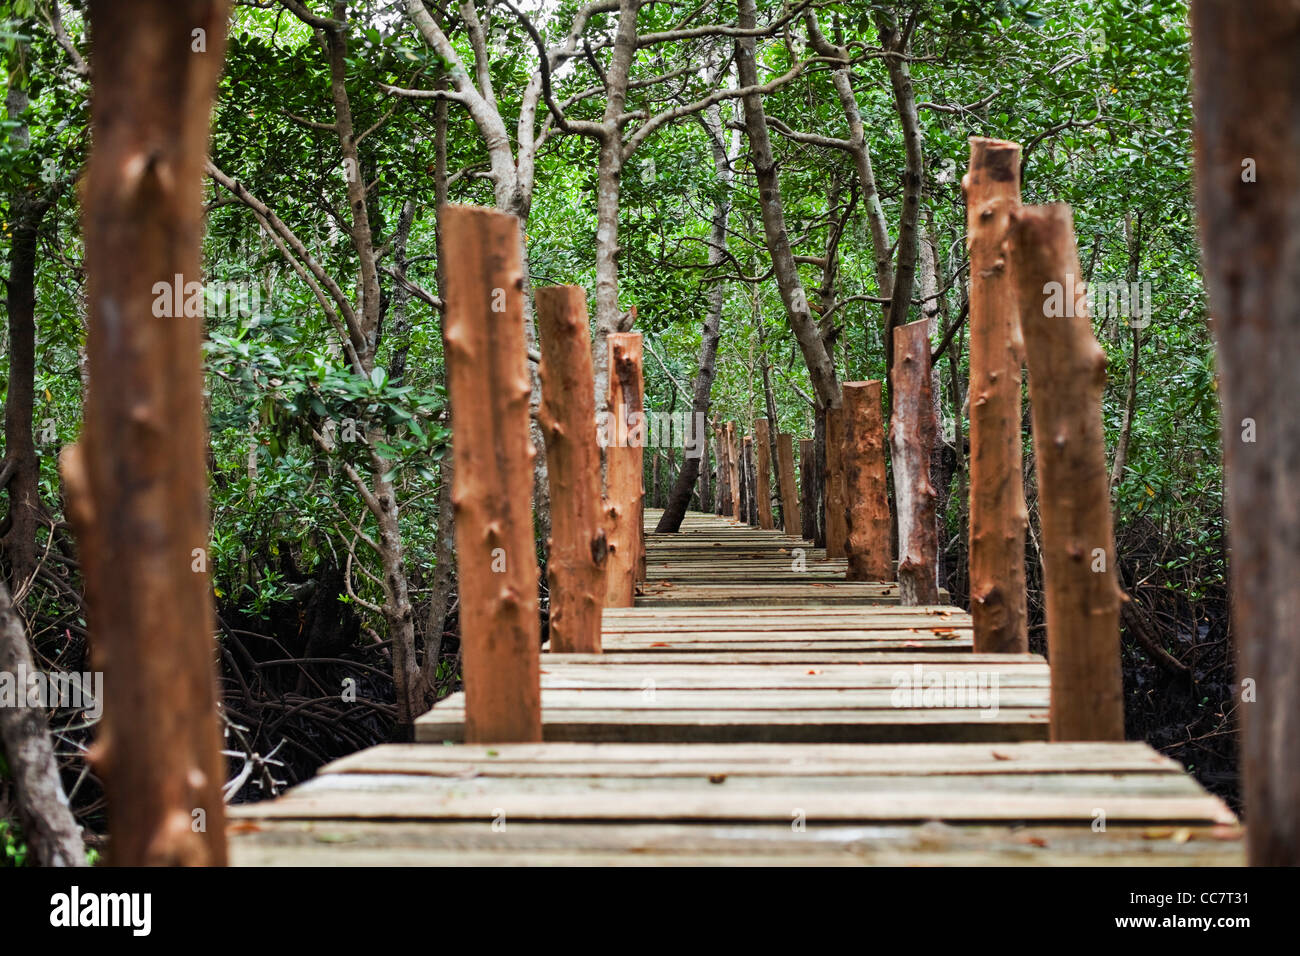 Forest Walk, Mangrove Swamp, Zanzibar, Tanzania Stock Photo